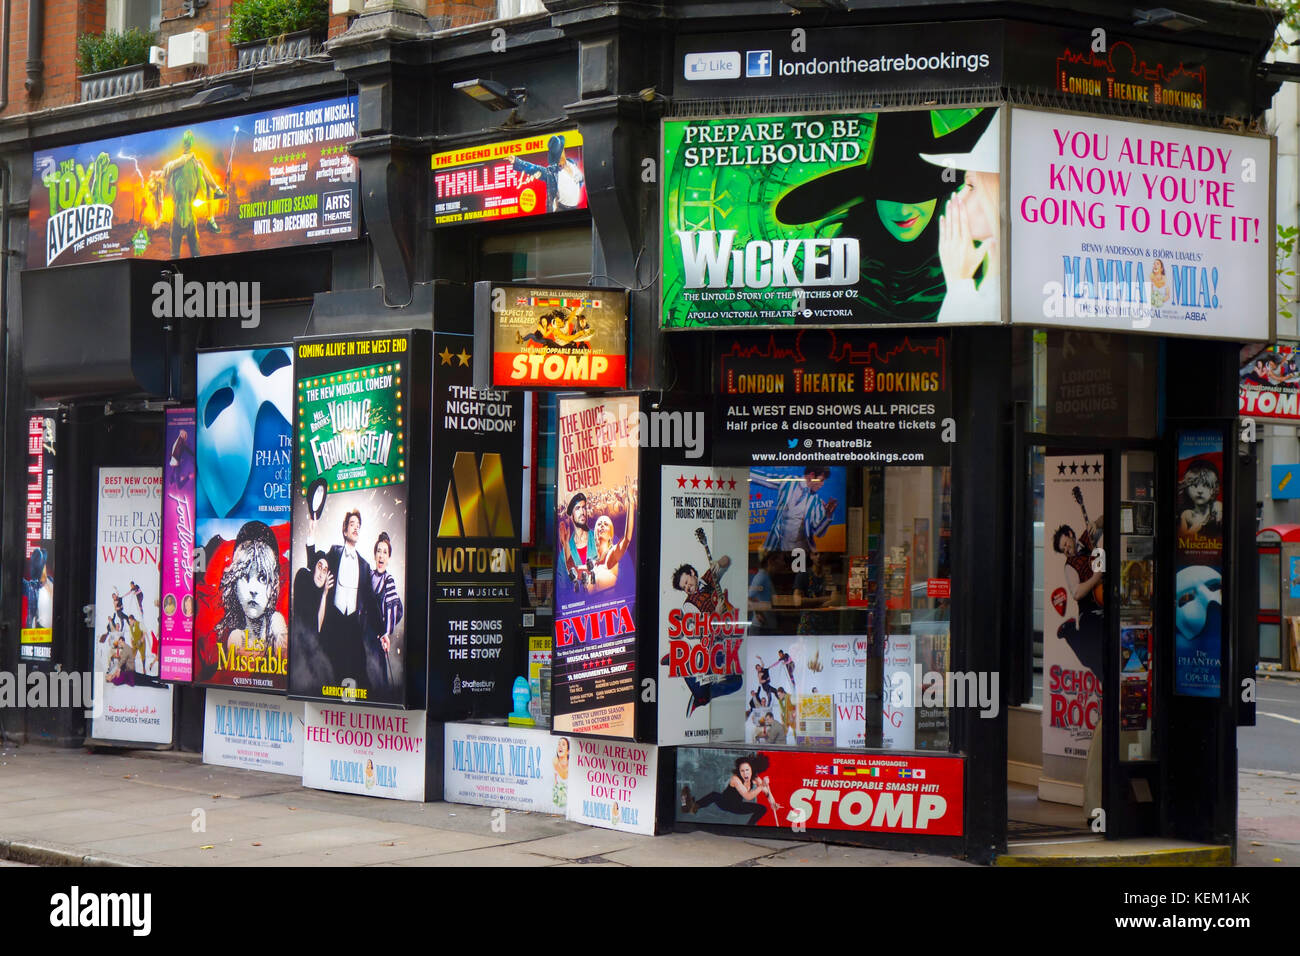 London, England, UK. London Theatre Bookings shop selling discount theatre tickets at 188 Shaftesbury Avenue. - Stock Image